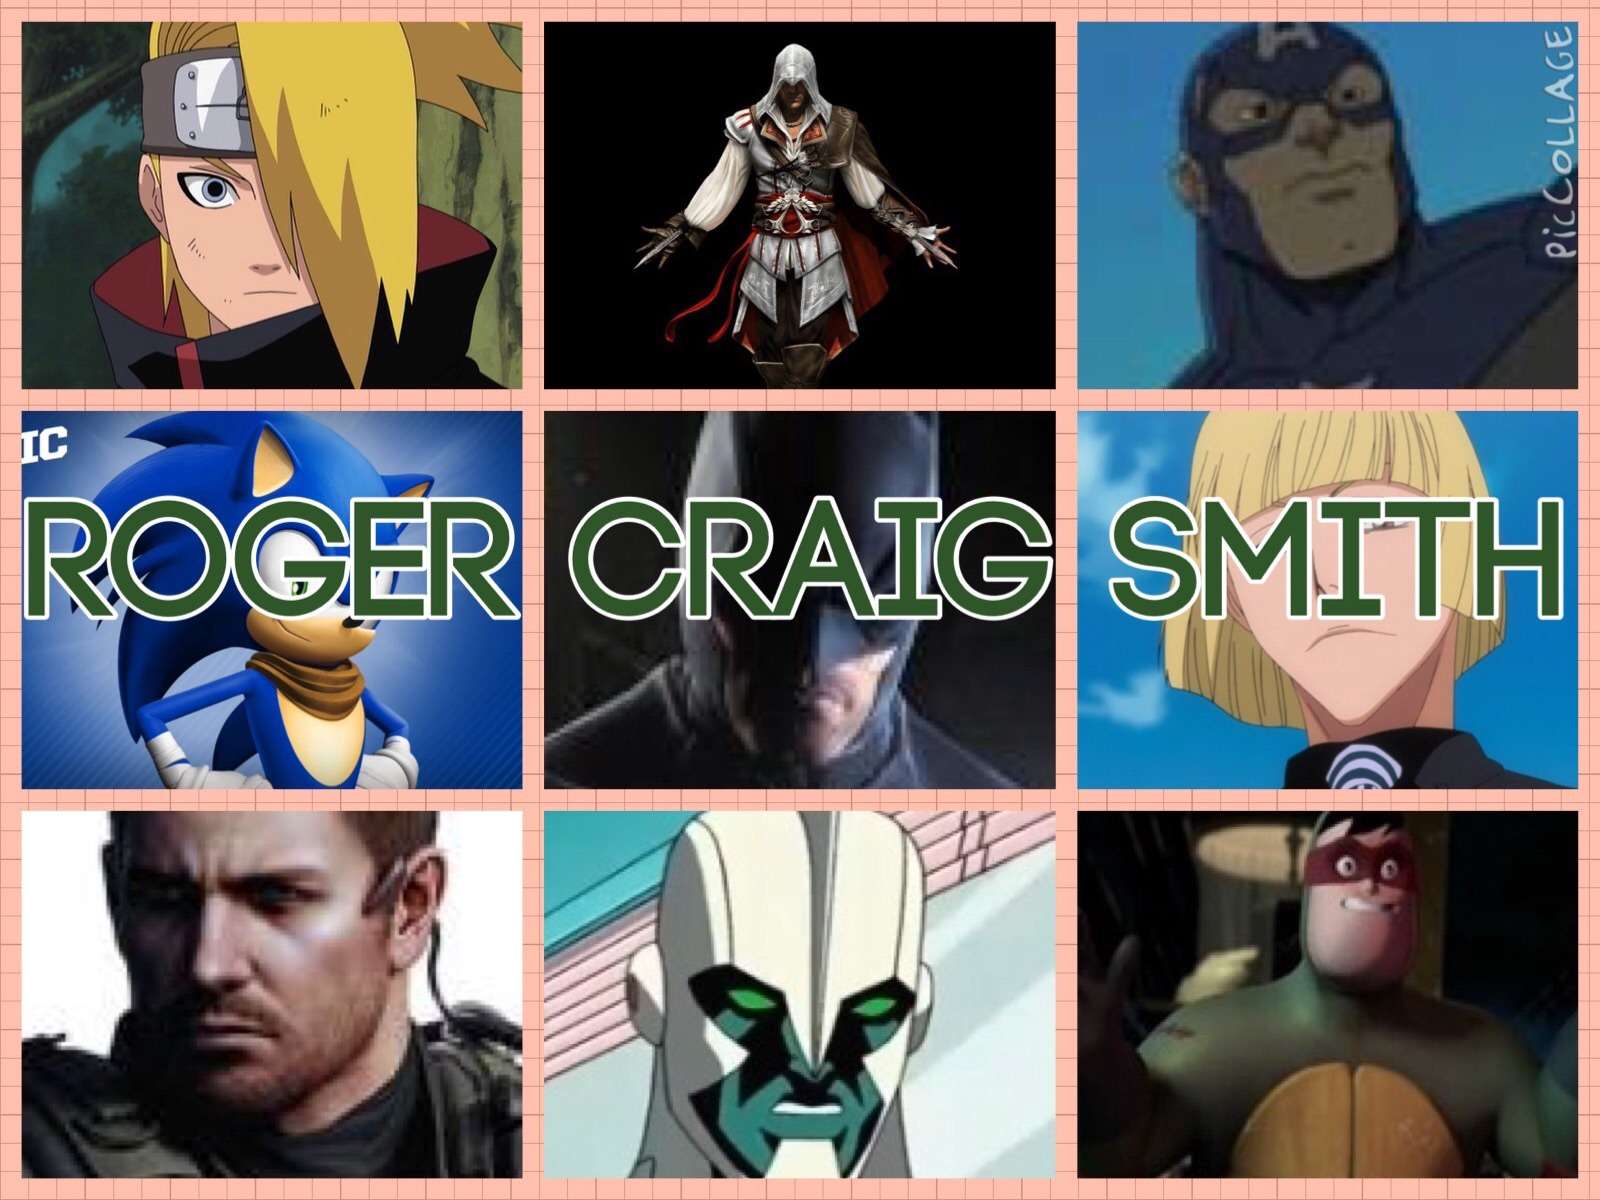 roger craig smith assassin creed